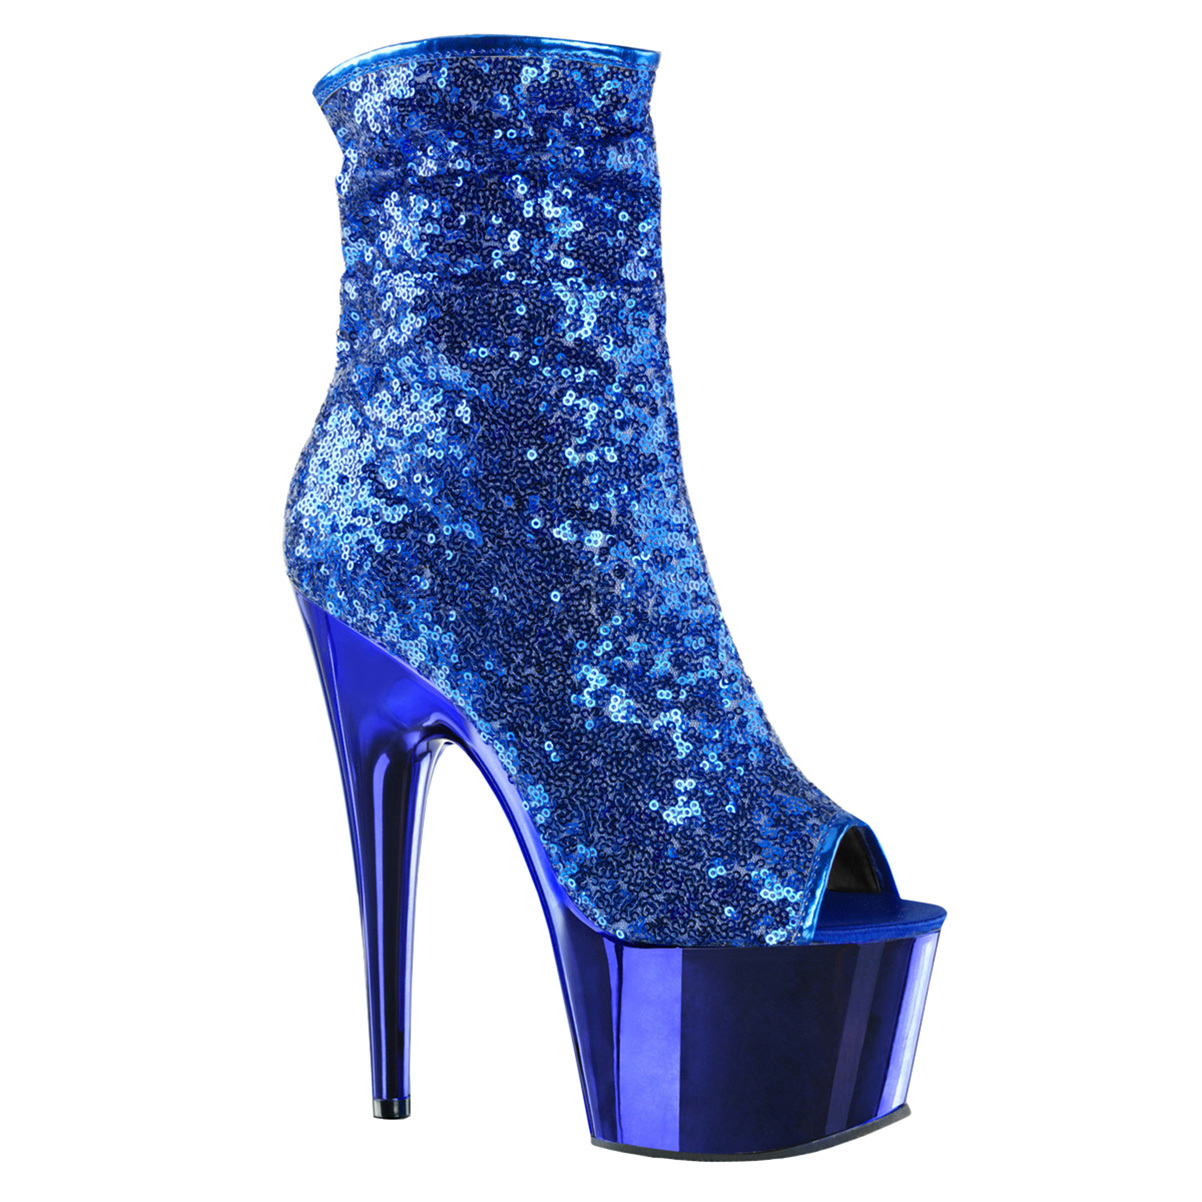 Womens Blue Ankle Boots Peep Toe Shoes Platforms Sequin Booties 7 Inch Heels